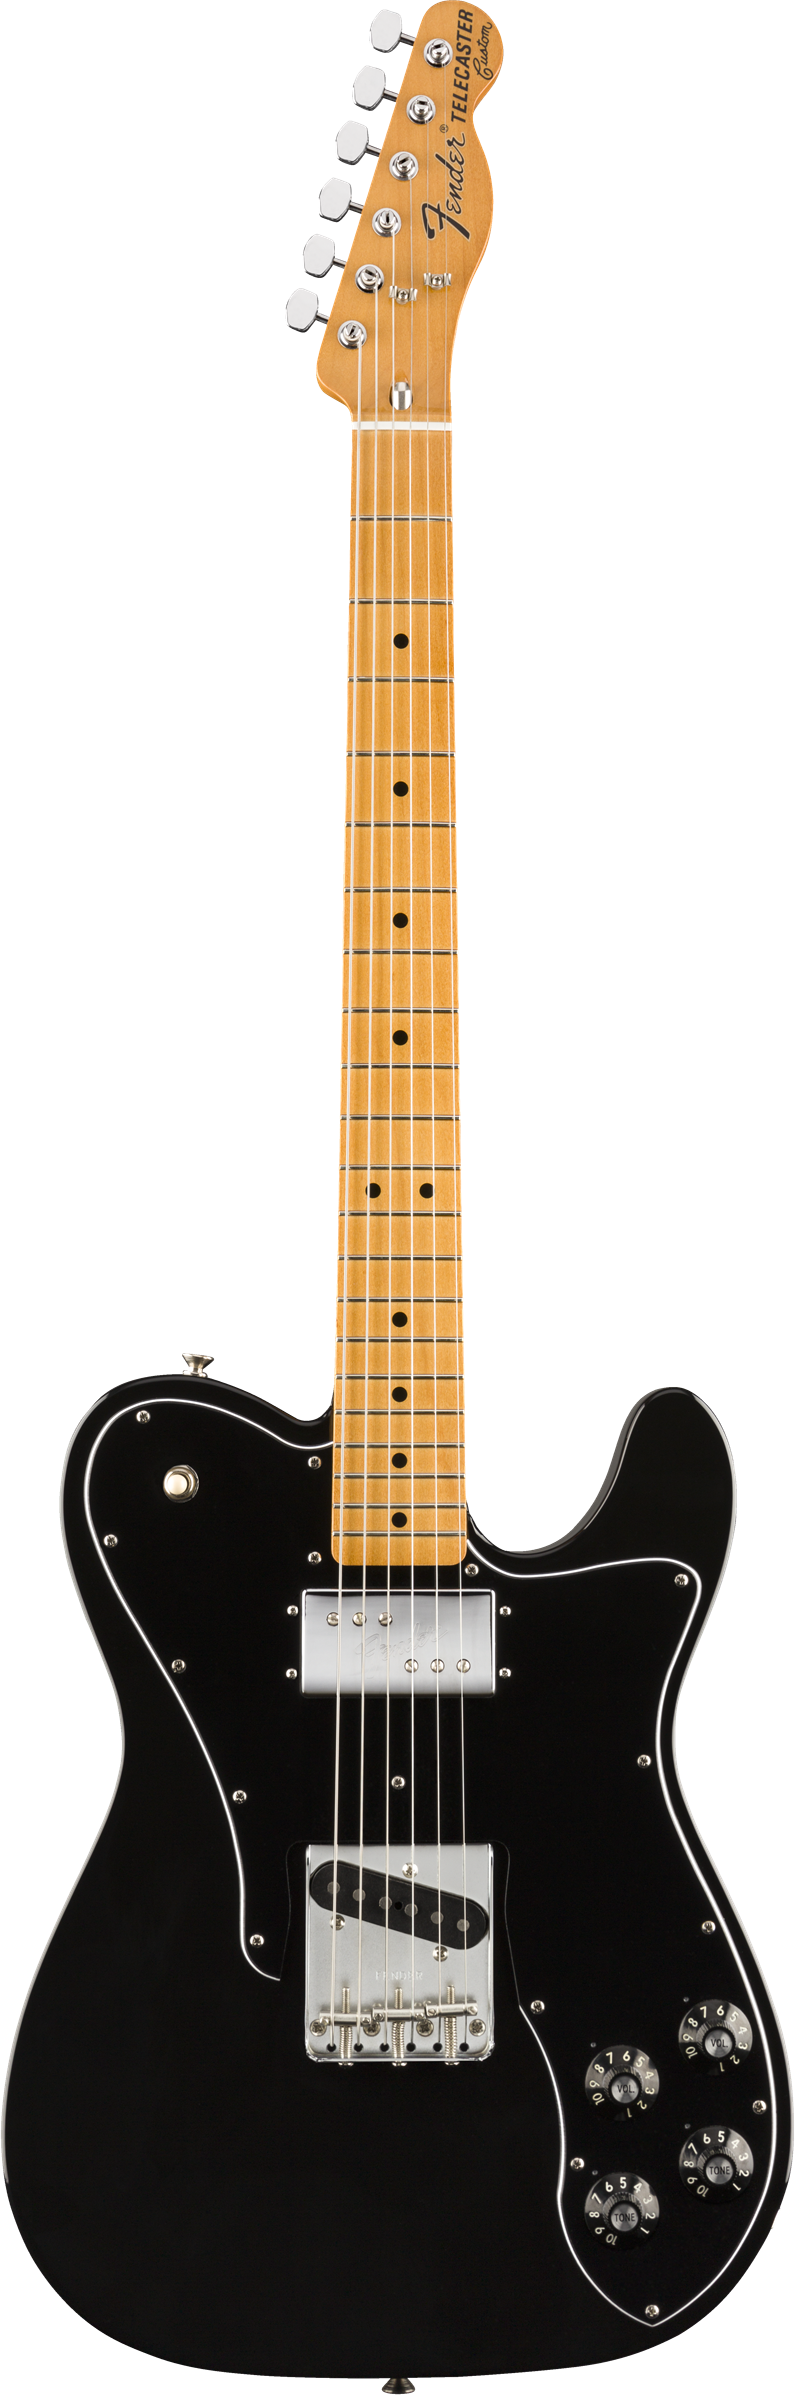 Fender Vintera 70s Telecaster Custom Black MN - Regent Sounds